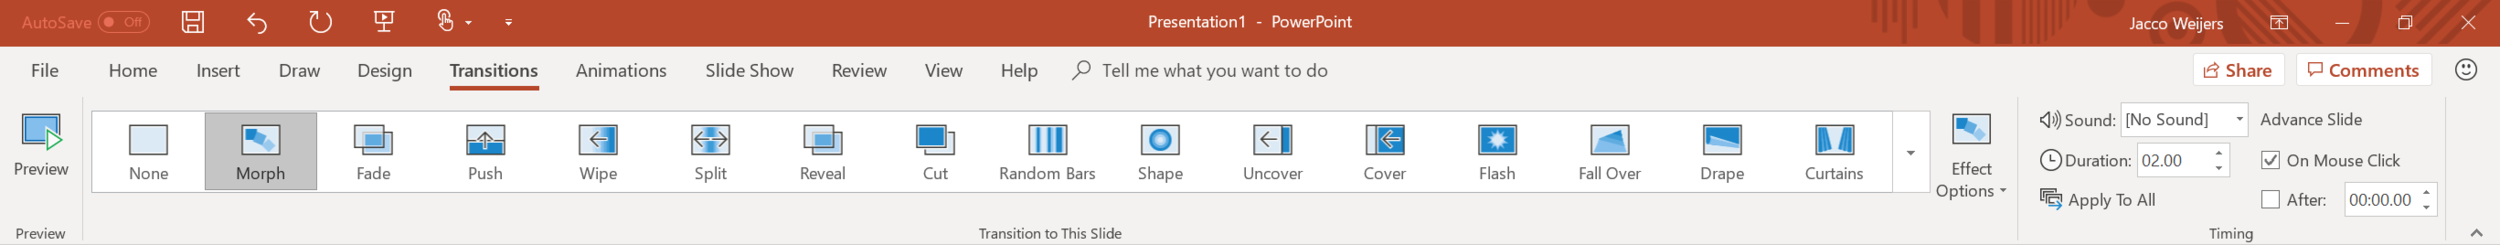 PowerPoint Morph.PNG